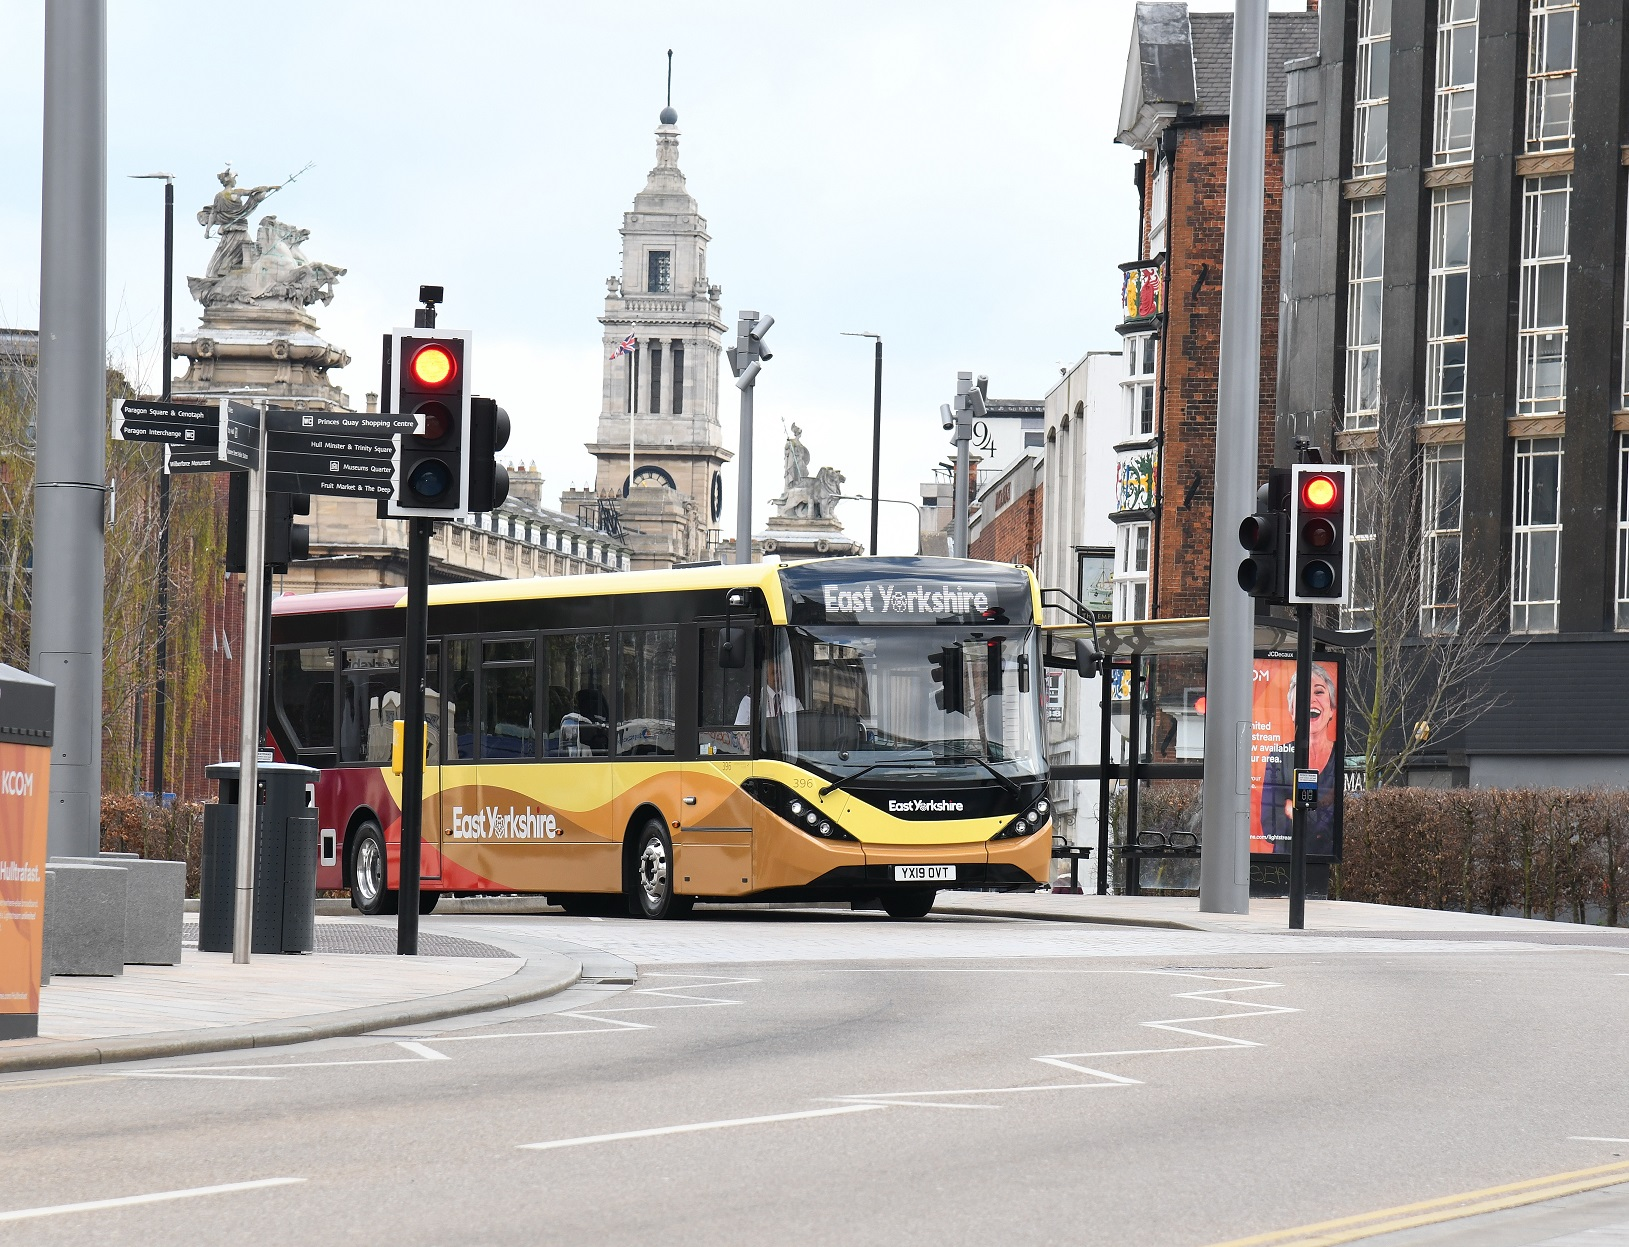 A single deck bus in Hull City Centre, with the Guildhall behind